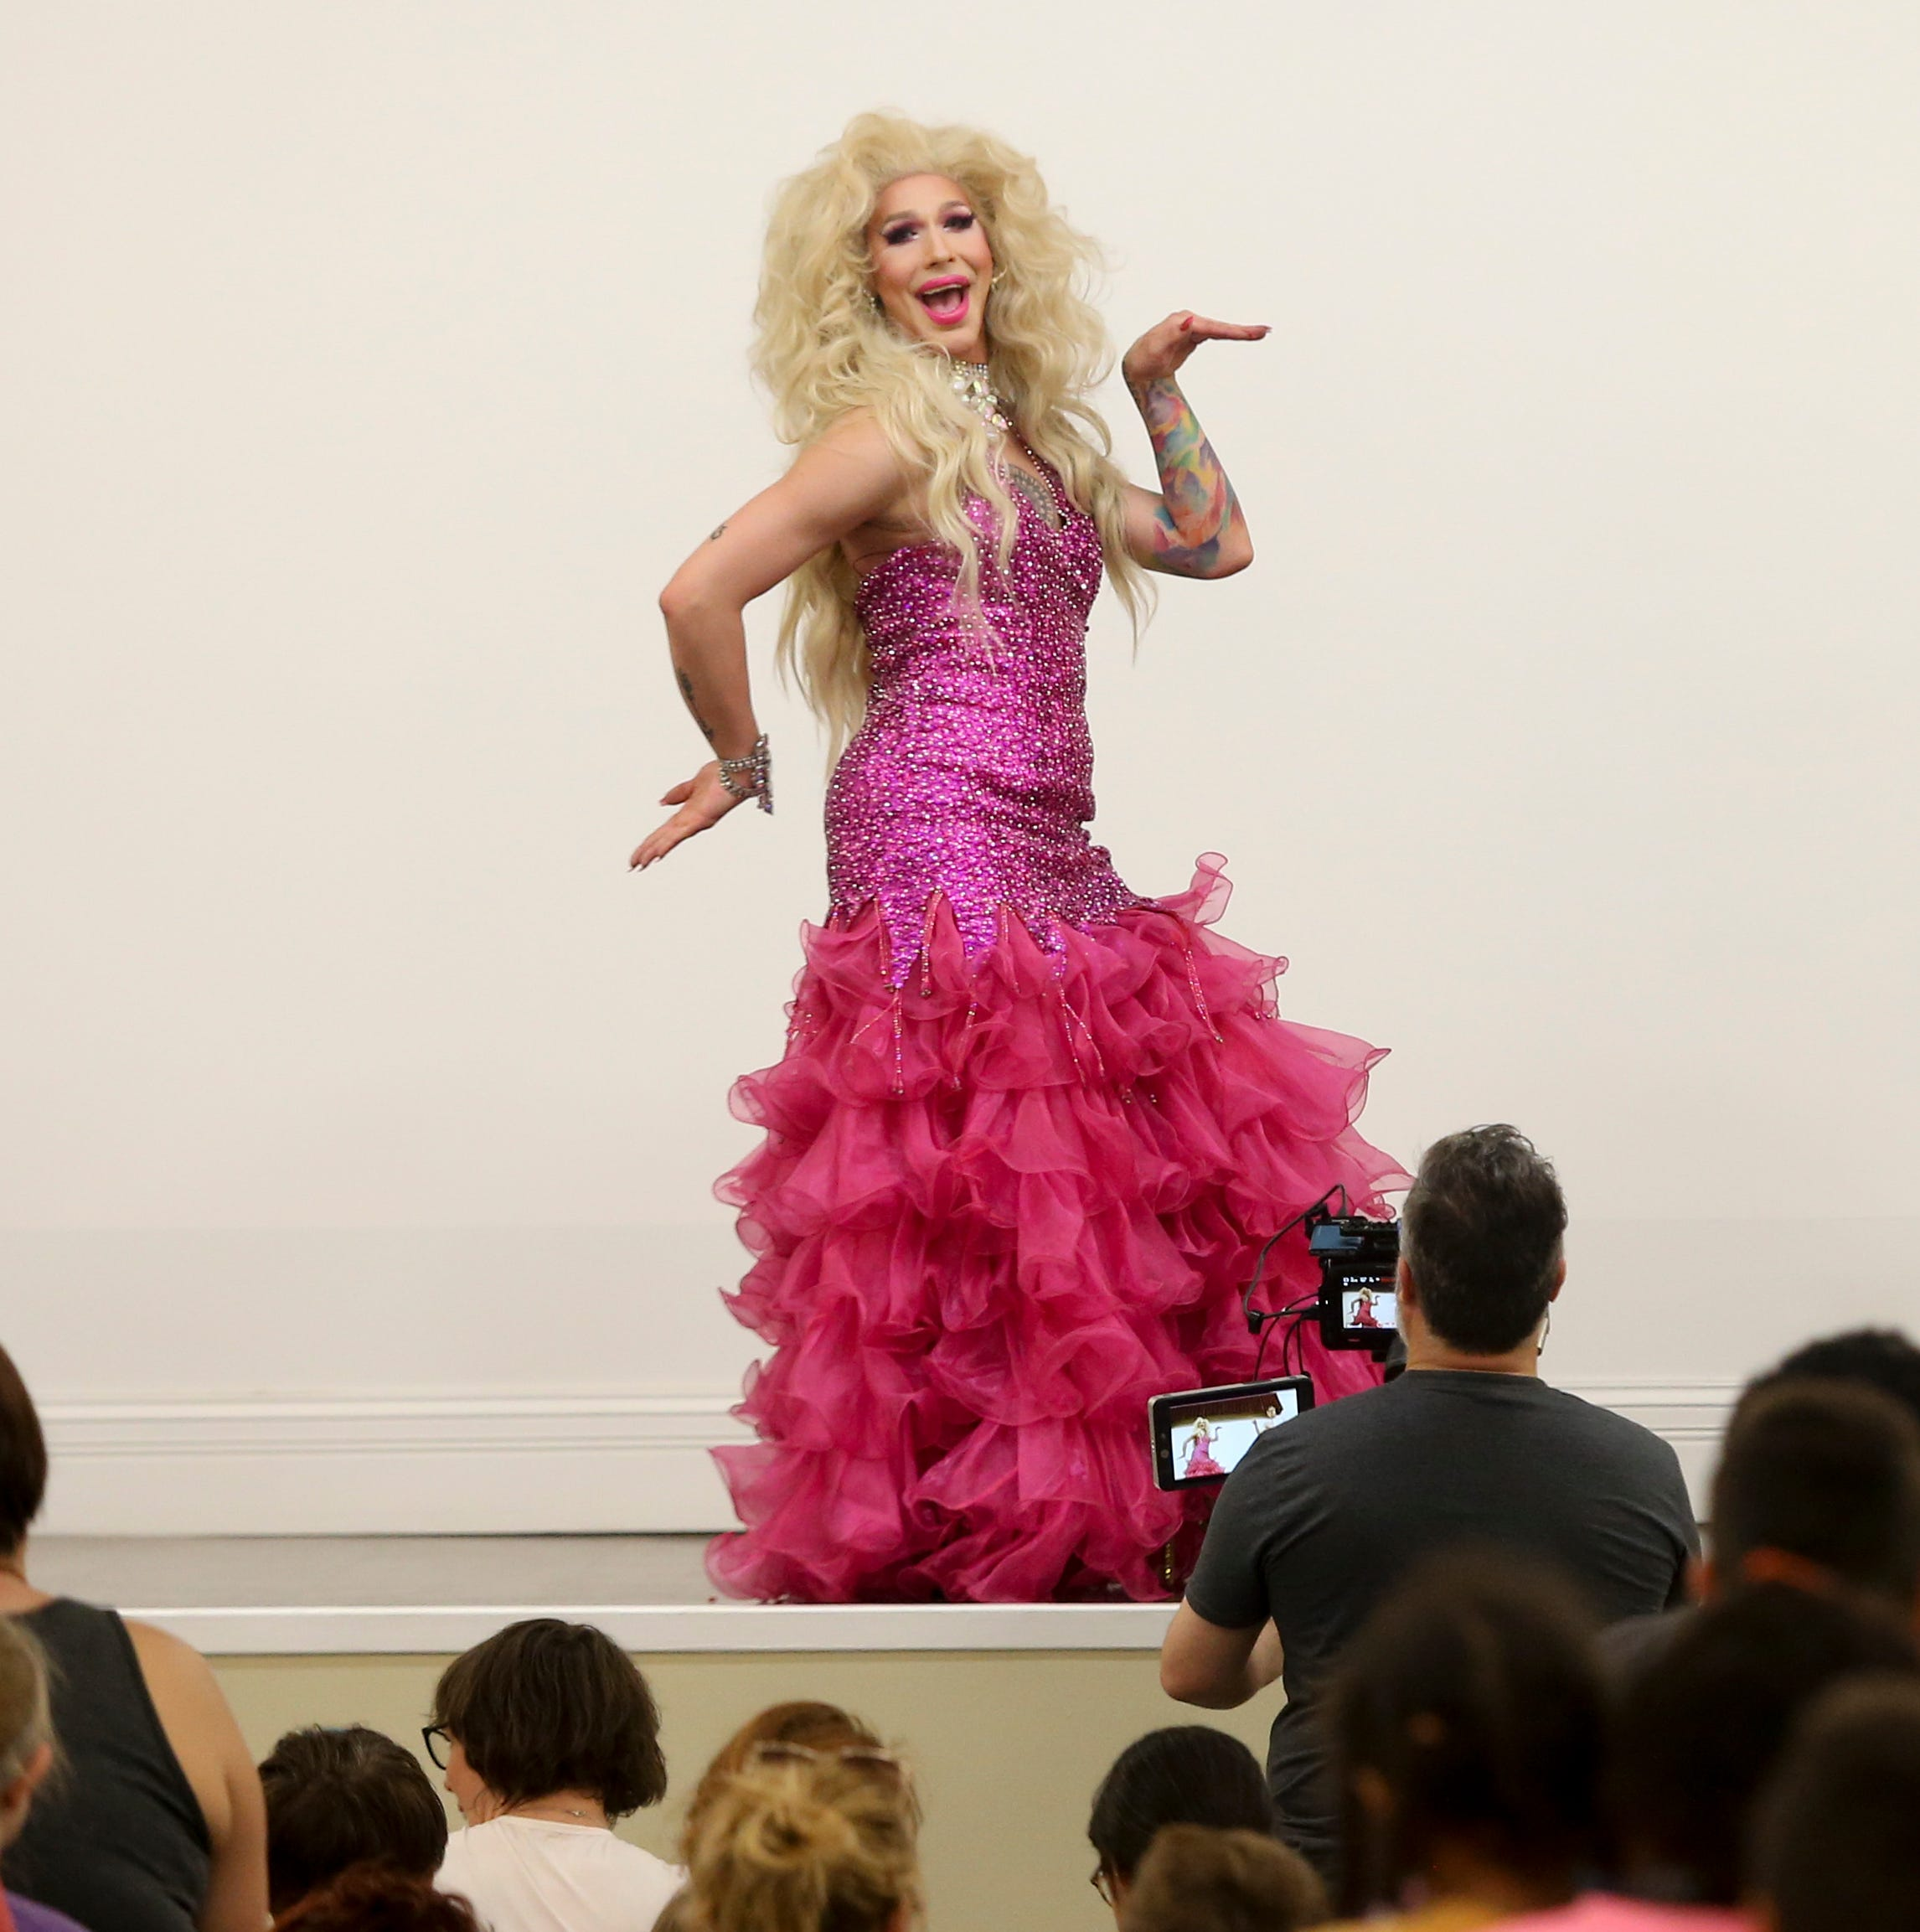 Drag Queen Storytime's Vanessa Demornay warms up the audience at the main Louisville Library on May 18.